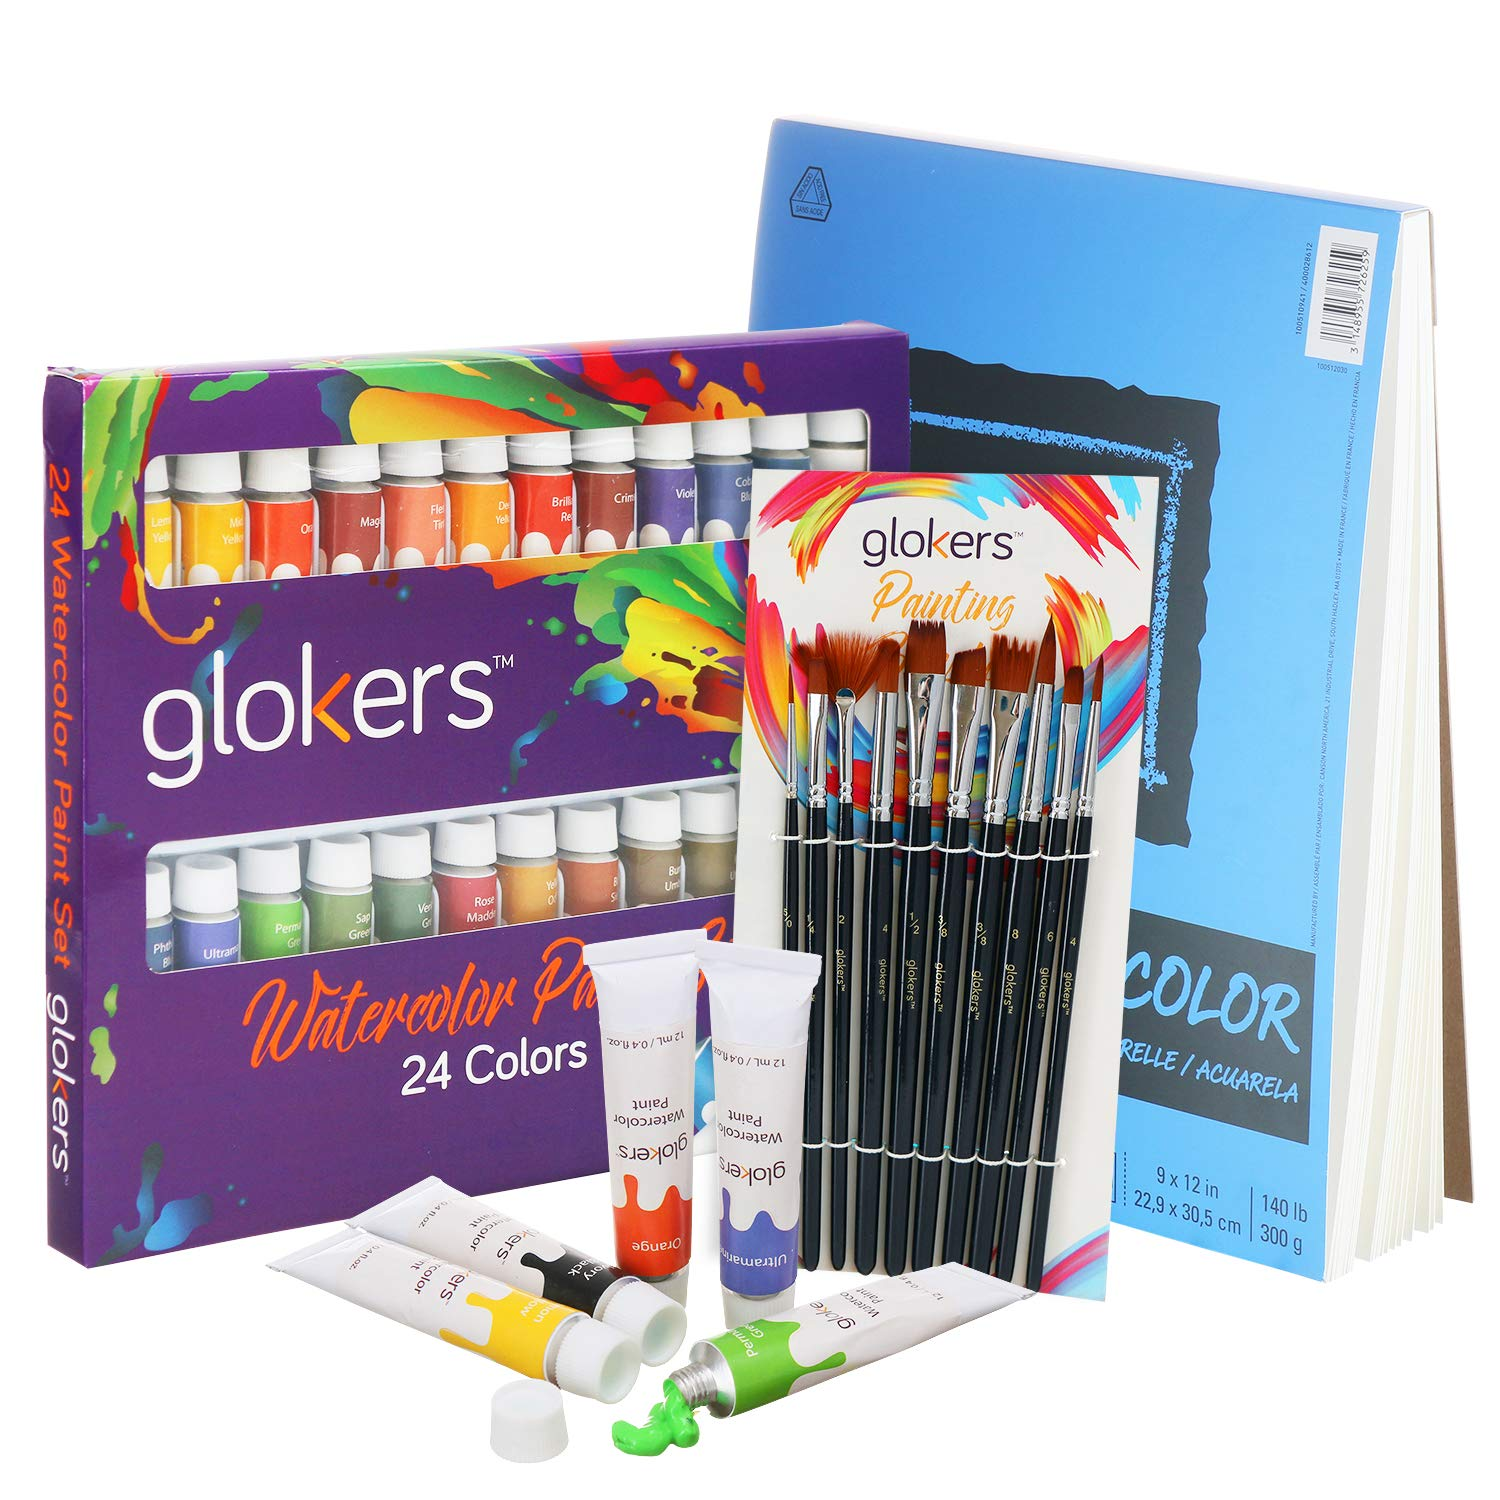 glokers Premium Watercolor Paint Set Bundle with Canson XL Watercolor Pad + 24 Paint Tubes/Colors + 10 Professional Paintbrushes | Painting Art Kit for Adults, Beginners, or Advanced Students by glokers